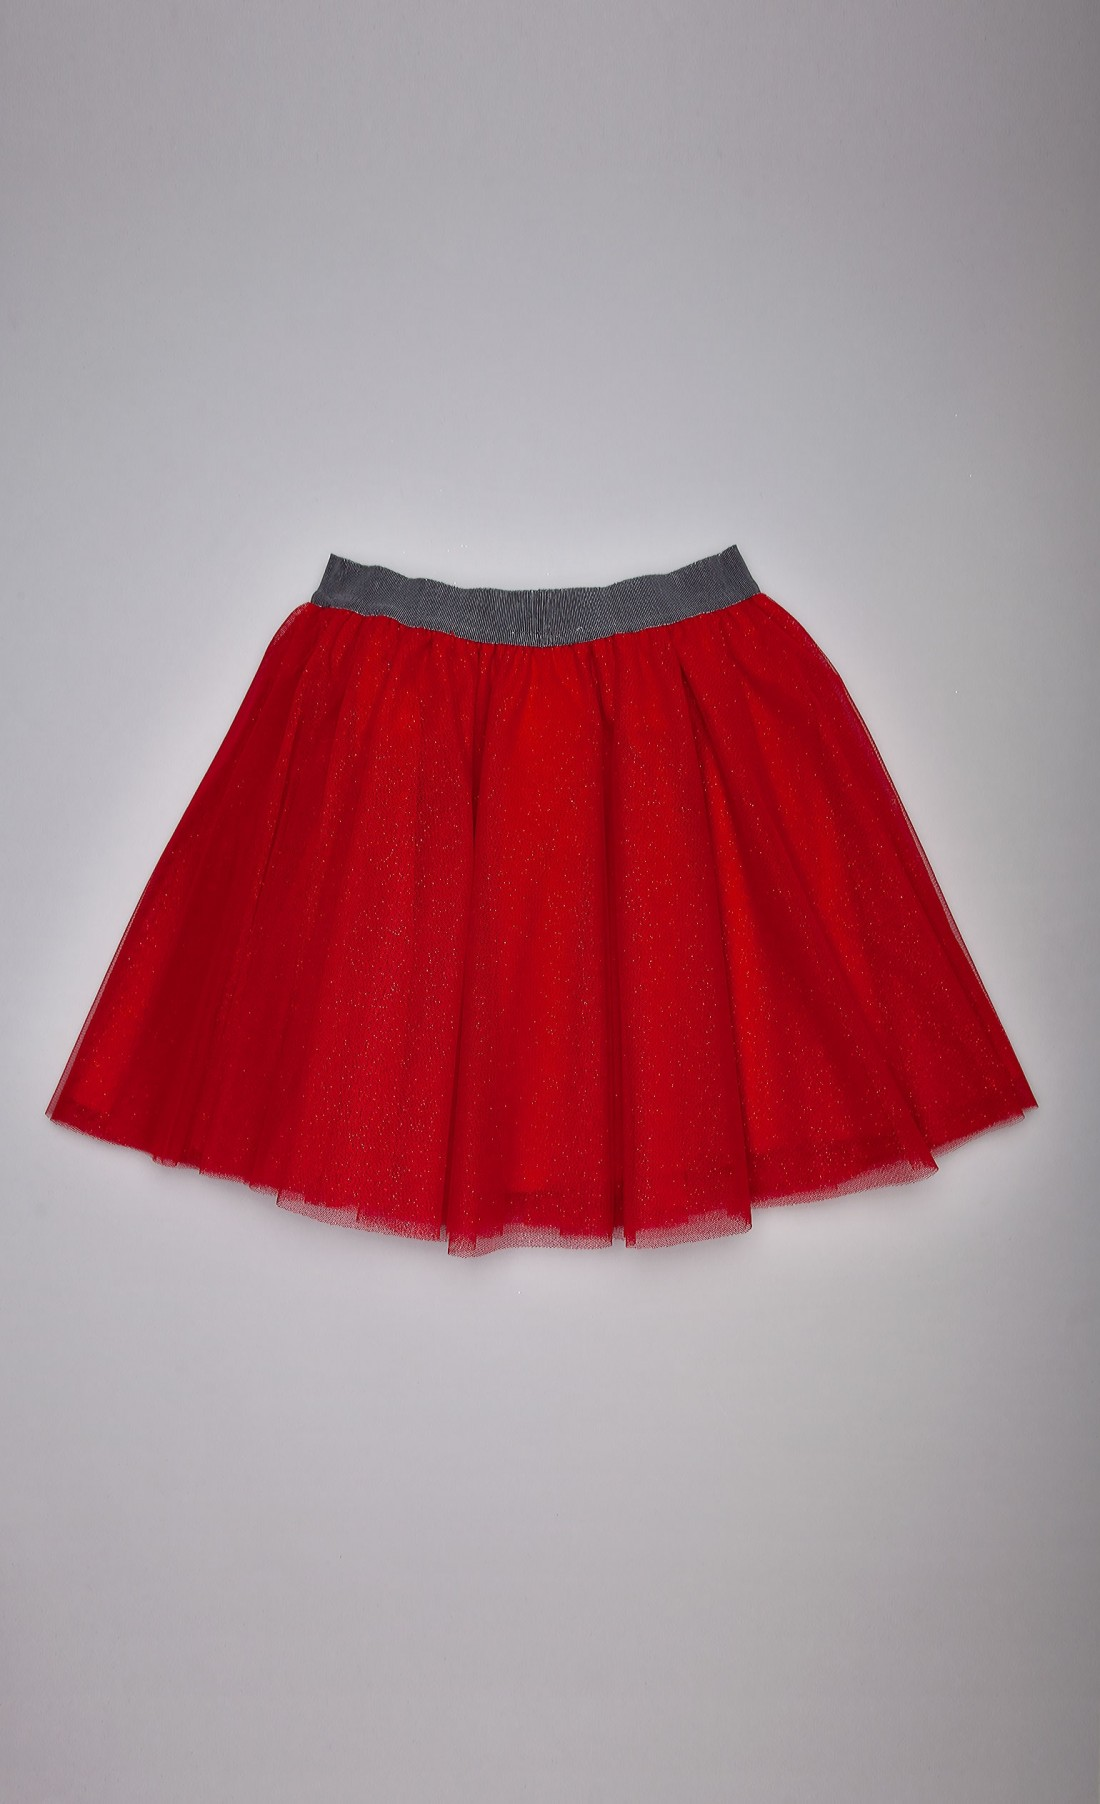 Gonna in tulle rosso rubino lurex